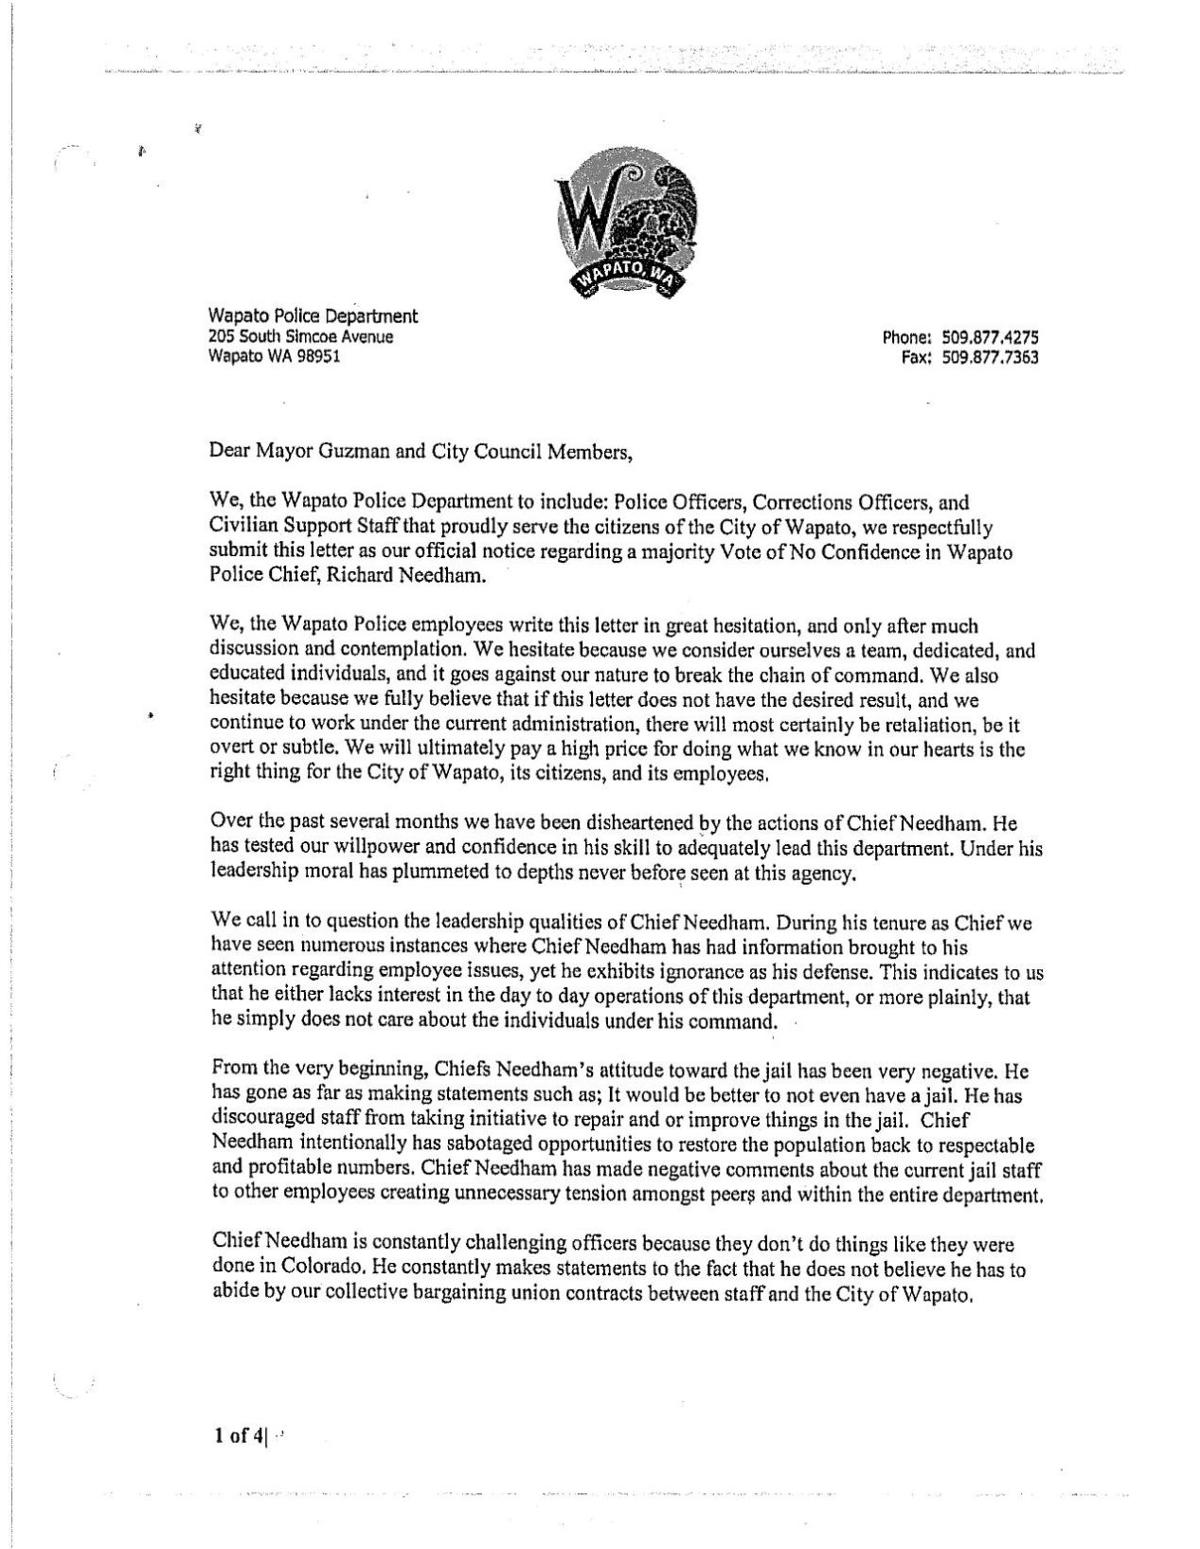 no confidence letter to mayor and council